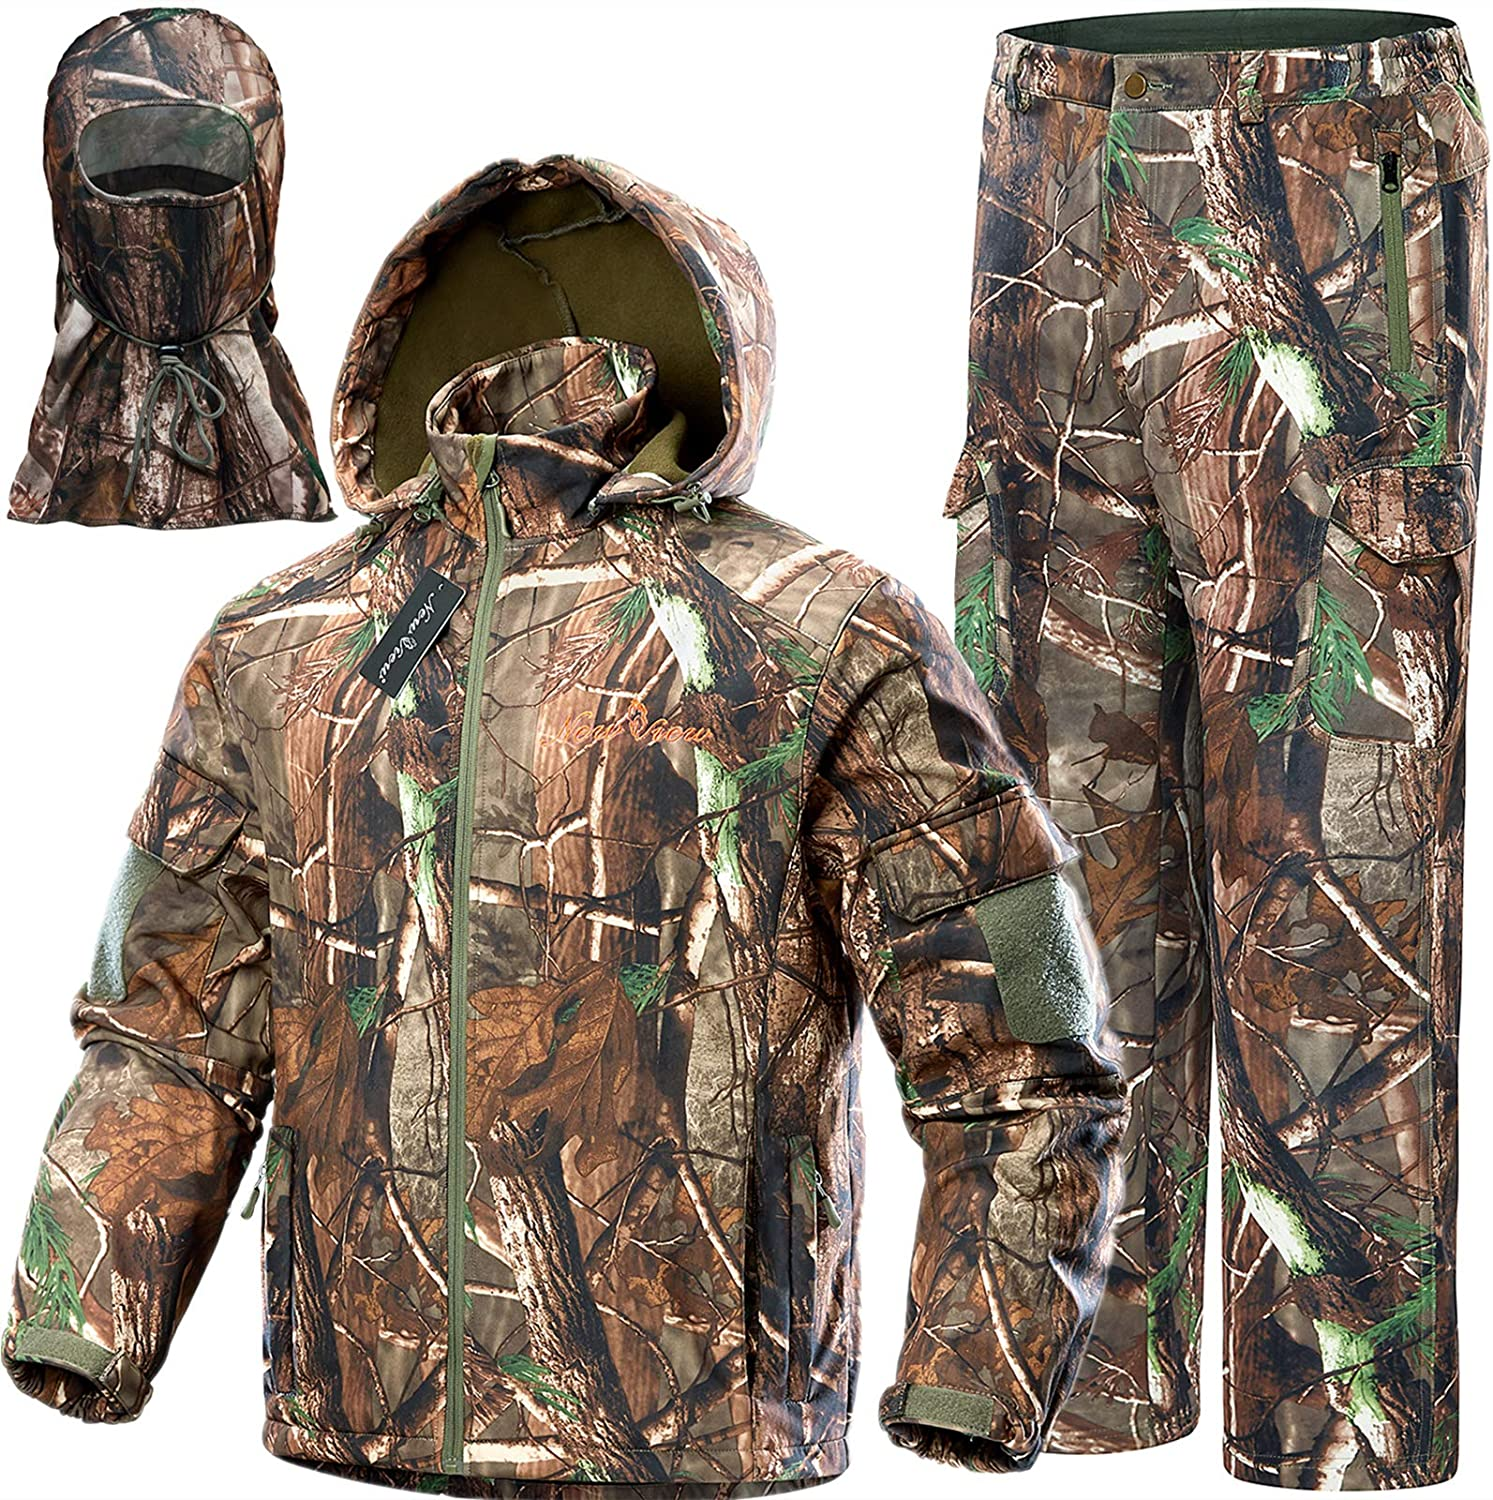 NEW VIEW Upgraded Hunting Clothes for Men,Silent Water Resistant Hunting Suits,Hunting Jacket and Pants: Clothing